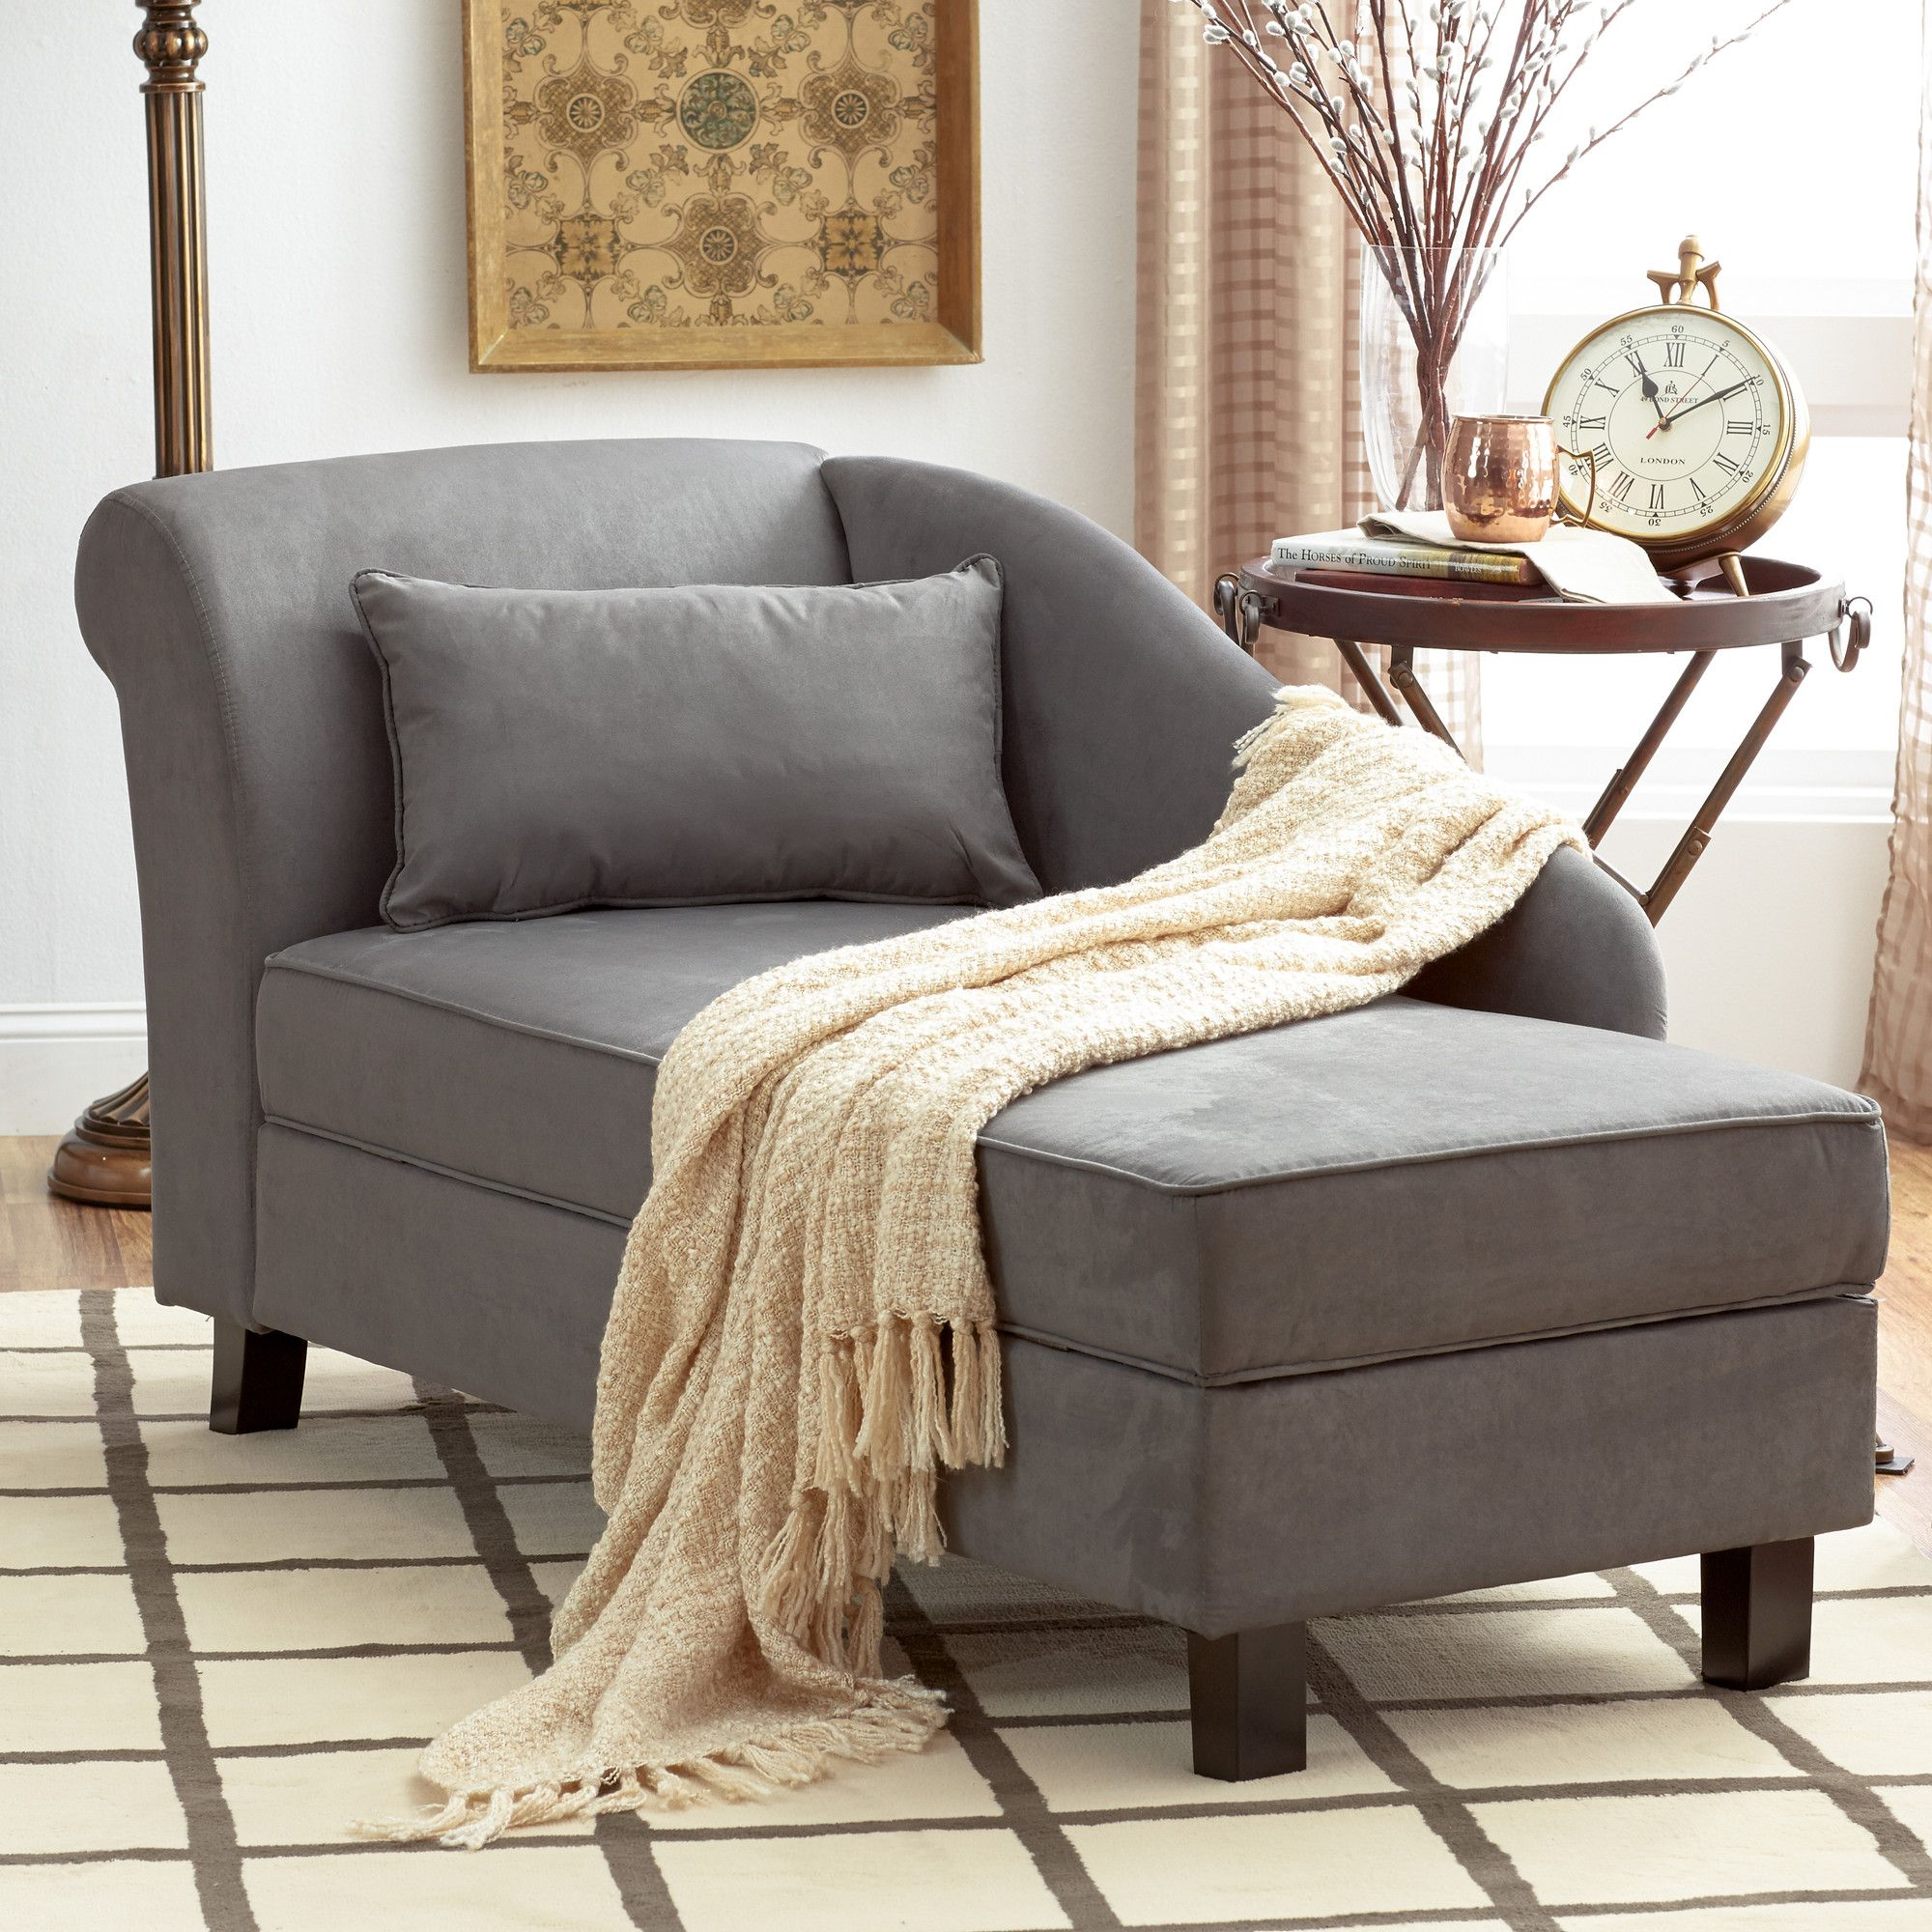 Wayfair For Chaise Lounge Chairs To Match Every Style And Budget Enjoy Free Shipping On Most Stuff Even